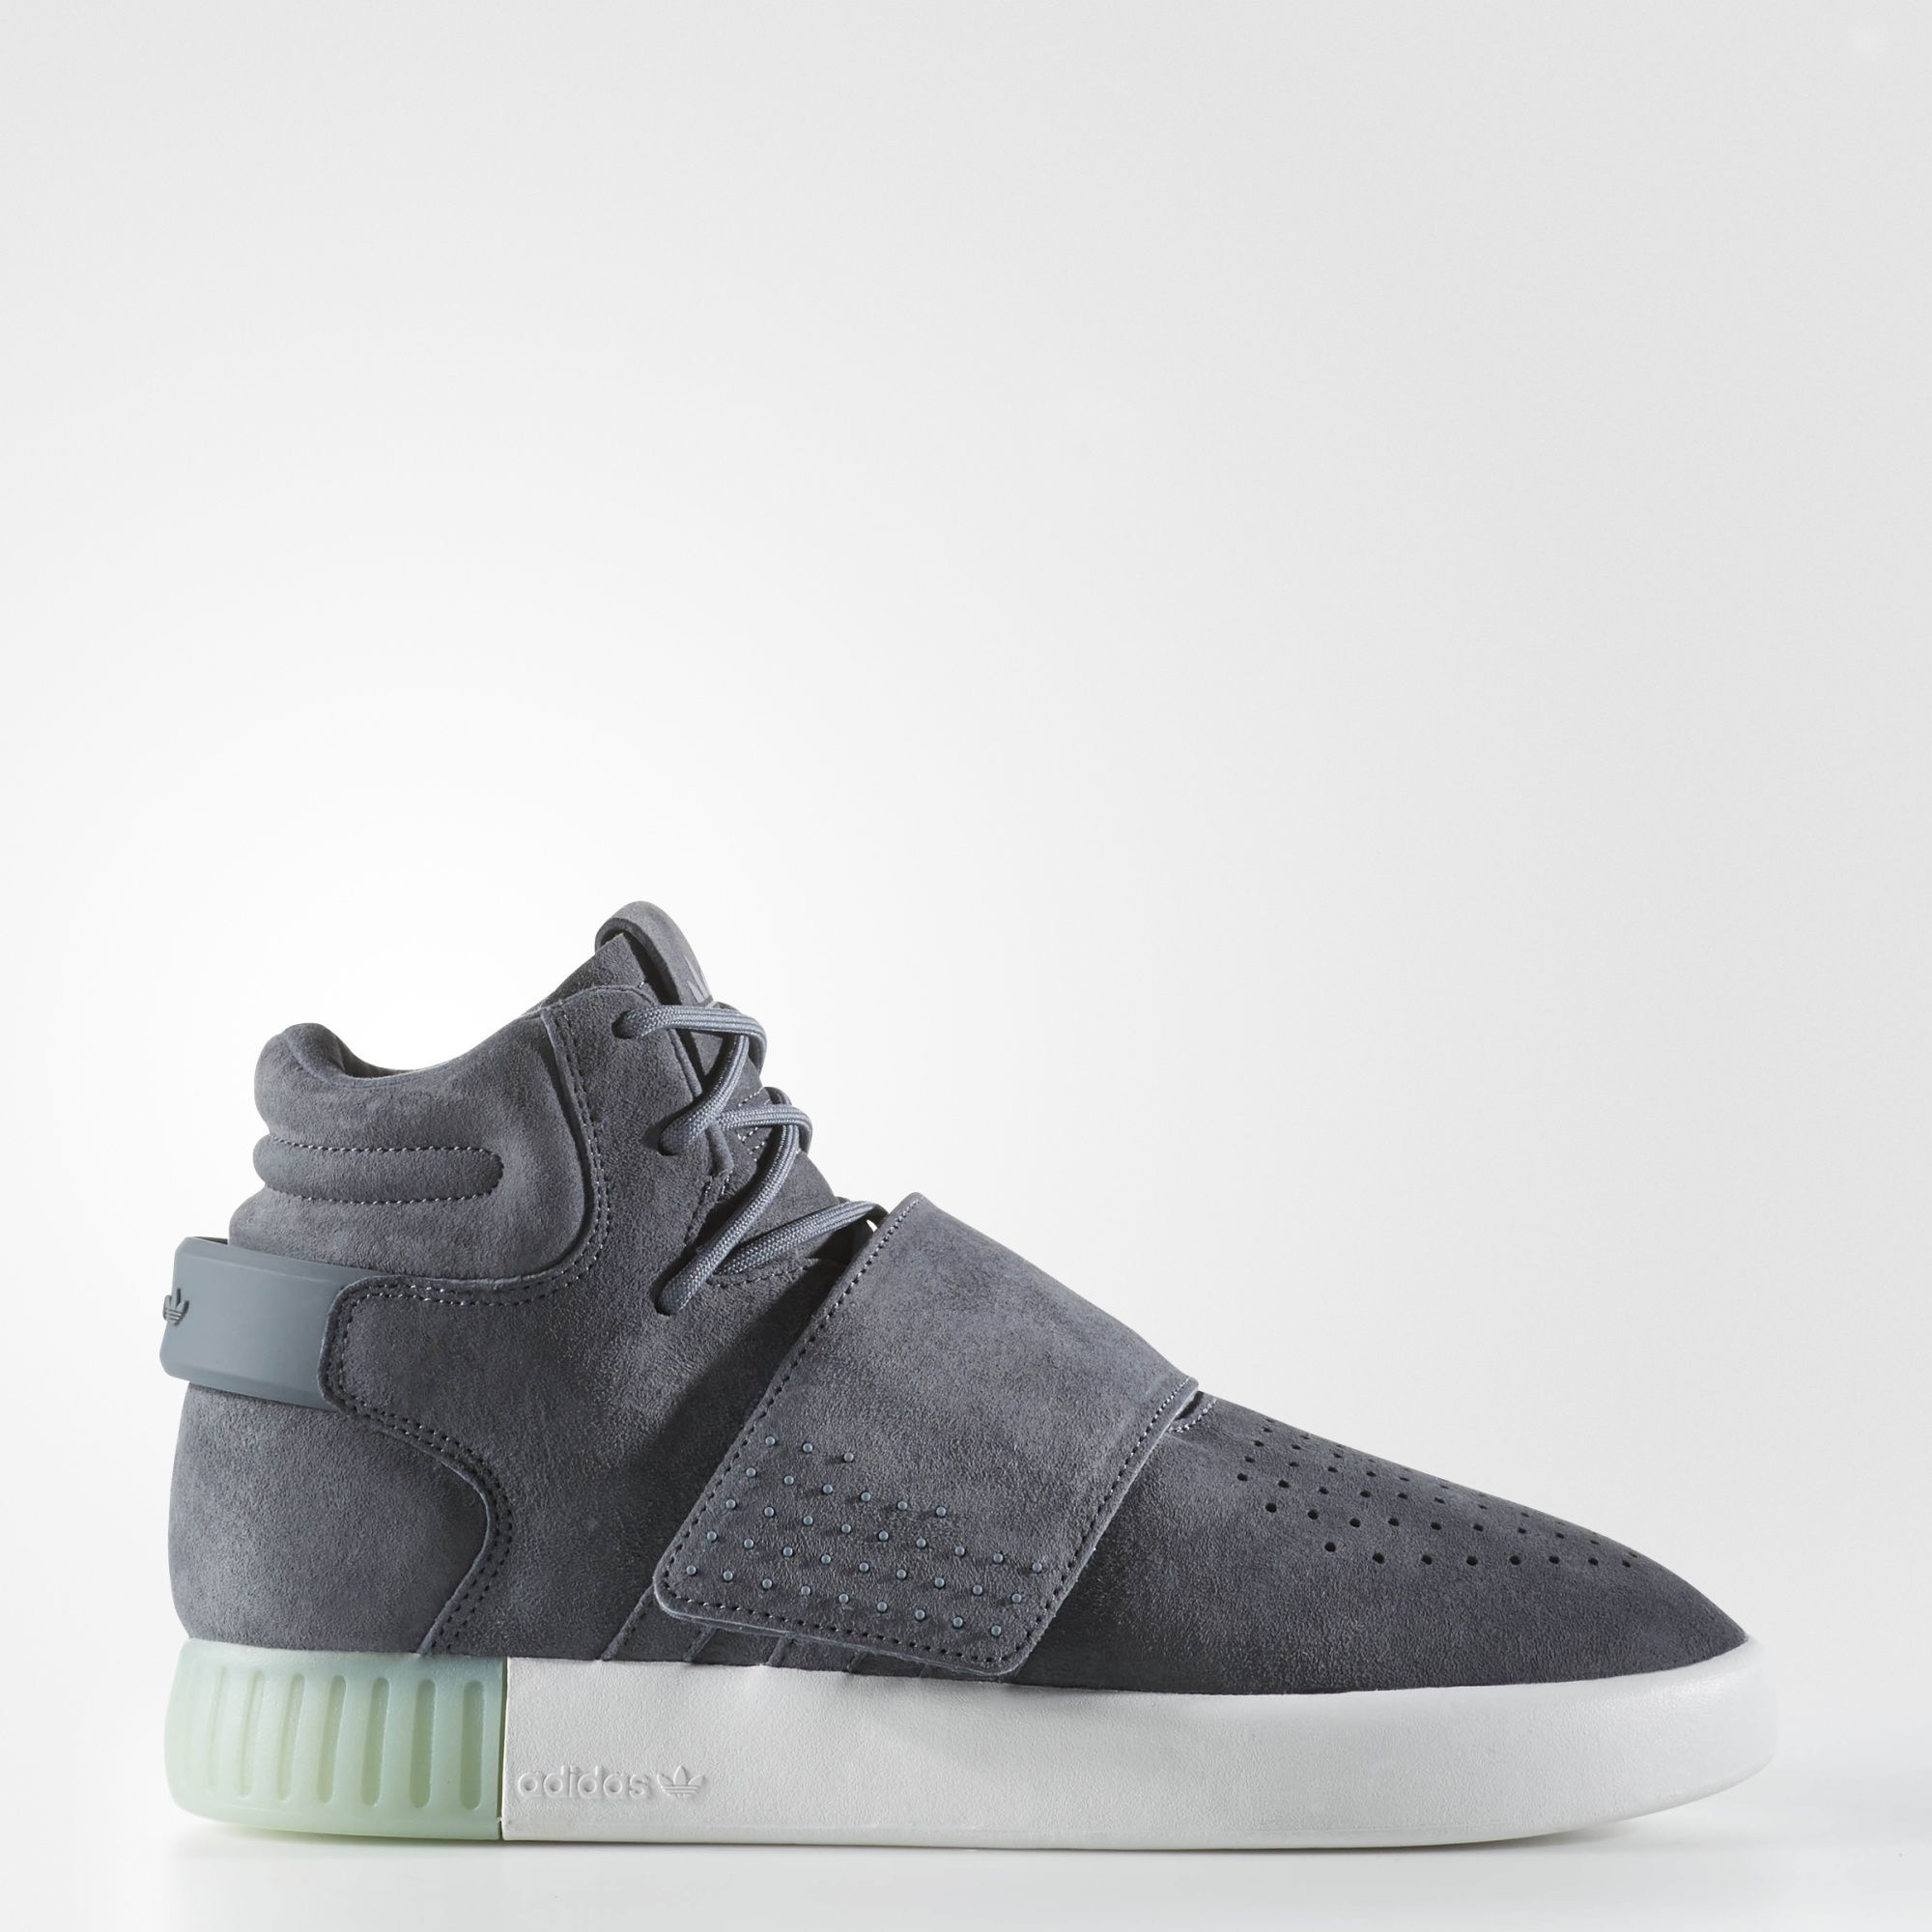 adidas - Tubular Invader Strap Shoes